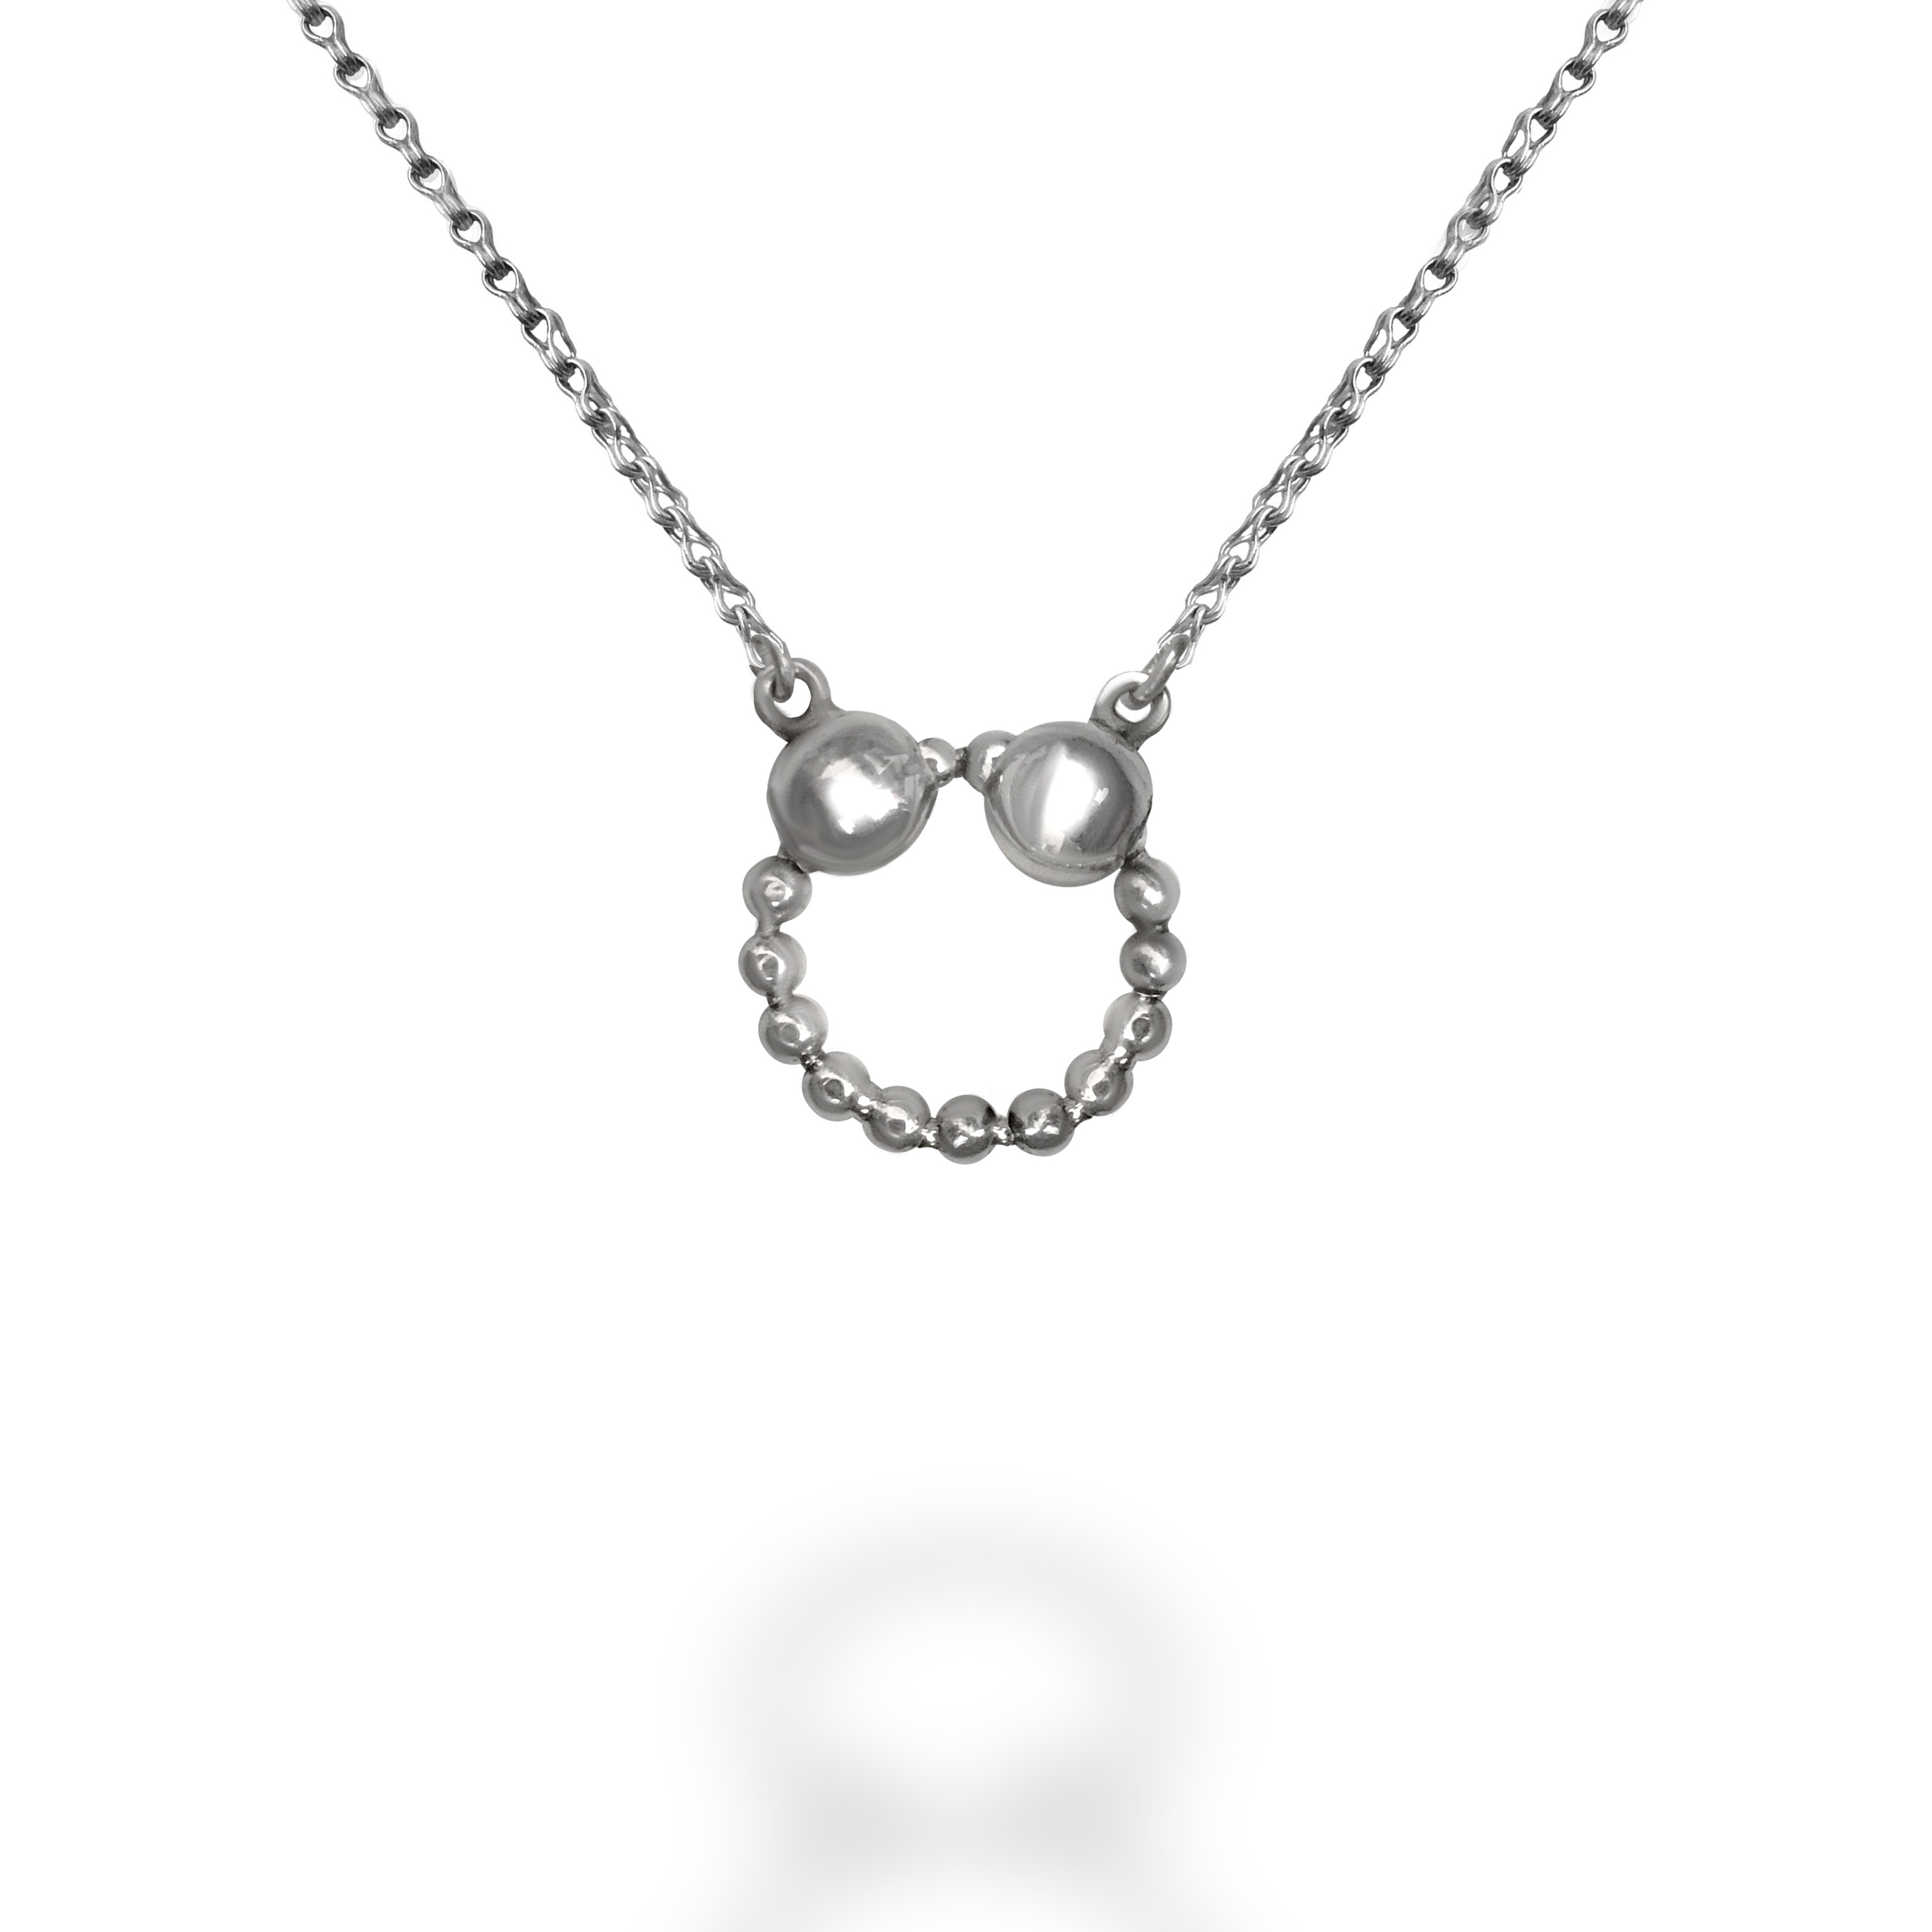 Traveling Speck Choker and Necklace